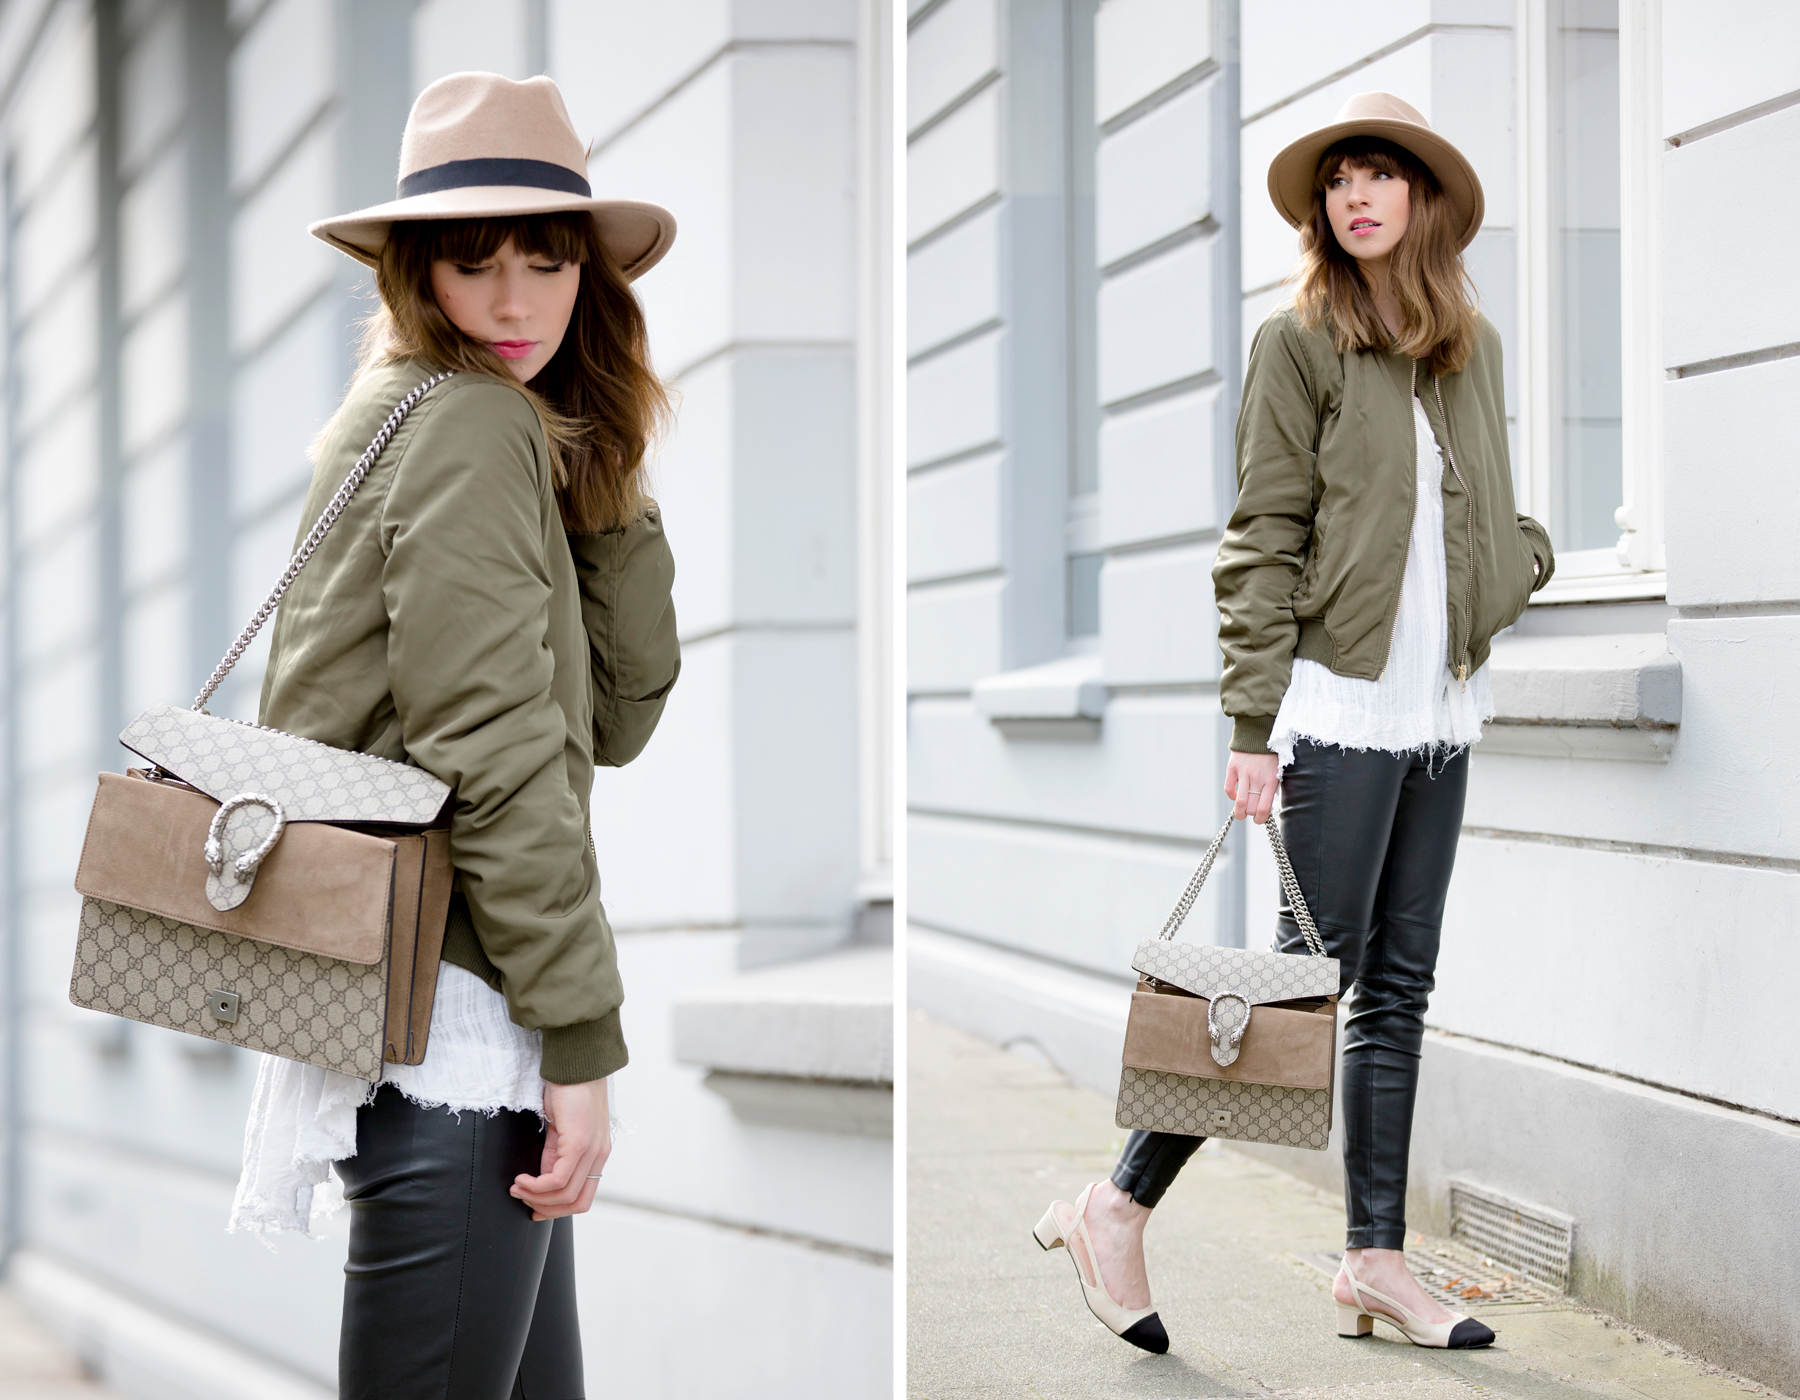 bomber jacket bomberjacke chanel slingbacks lookalike heine pumps chic gucci dionysus hat cute hipster style fashionblogger modeblogger düsseldorf styleblogger berlin high end luxury chic ricarda schernus cats & dogs blog 4